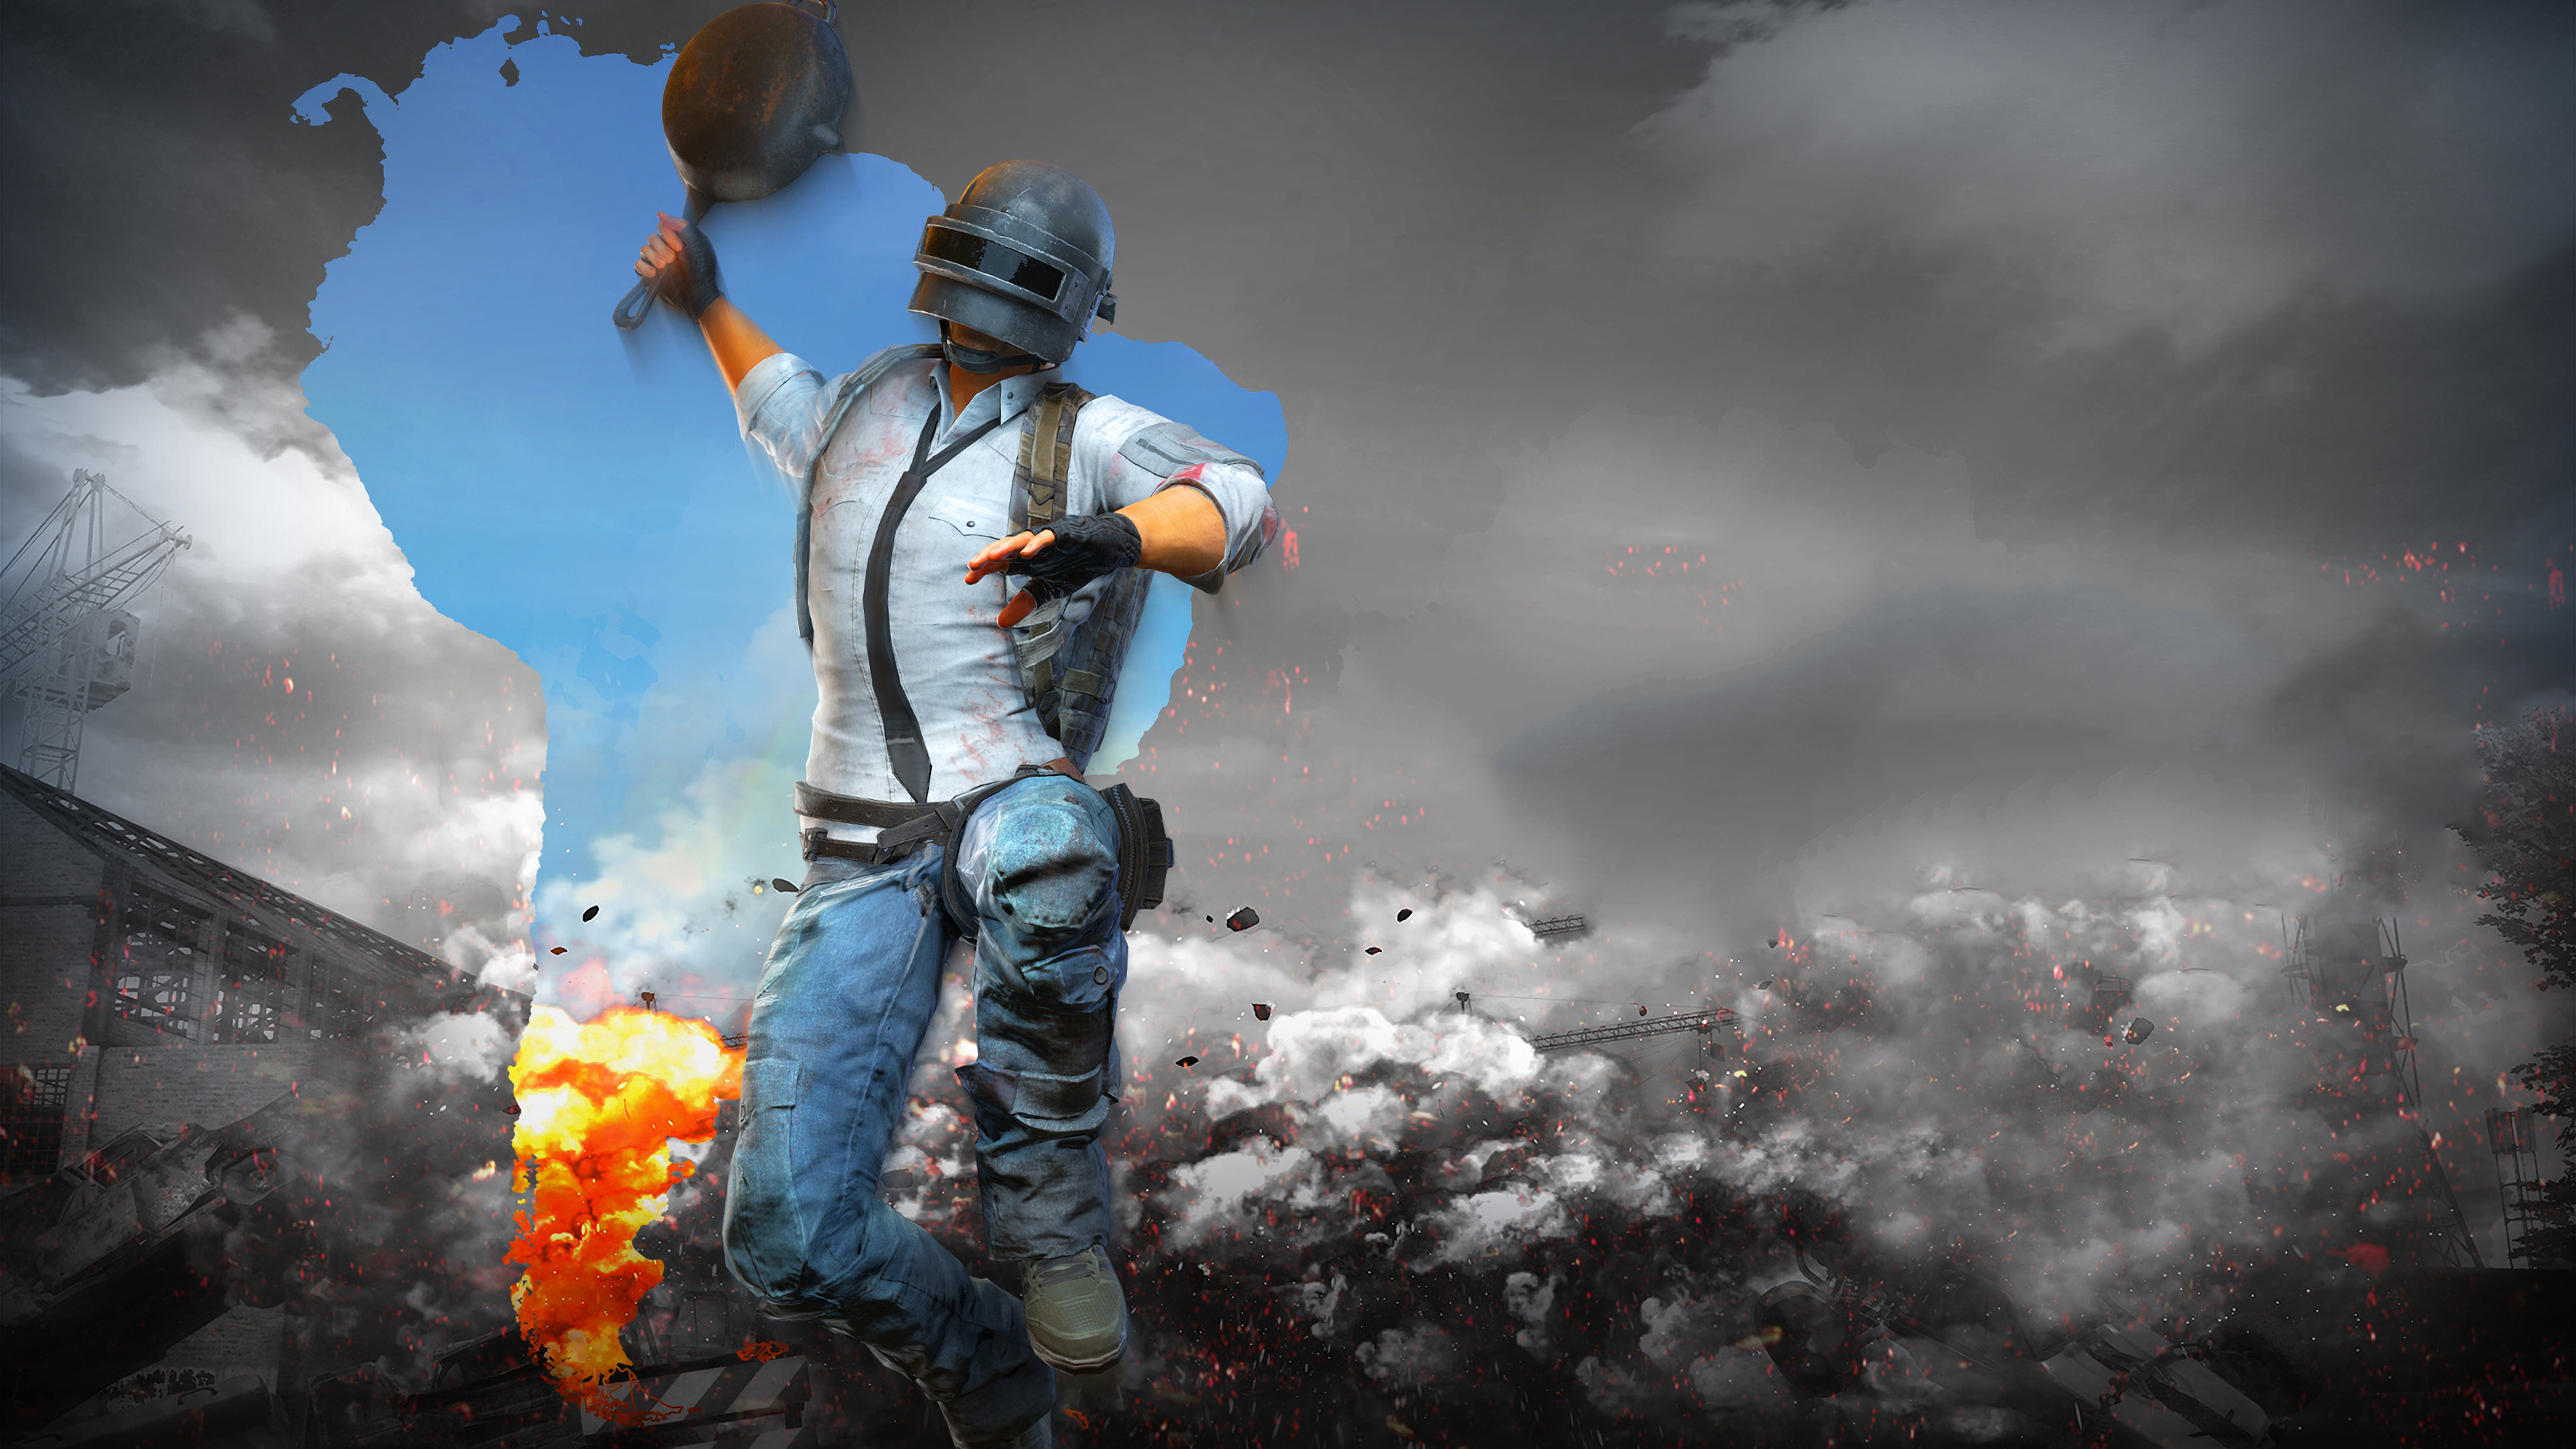 pubg helmet man with pan 4k 1541295361 - PUBG Helmet Man With Pan 4k - pubg wallpapers, playerunknowns battlegrounds wallpapers, helmet wallpapers, hd-wallpapers, games wallpapers, 4k-wallpapers, 2018 games wallpapers